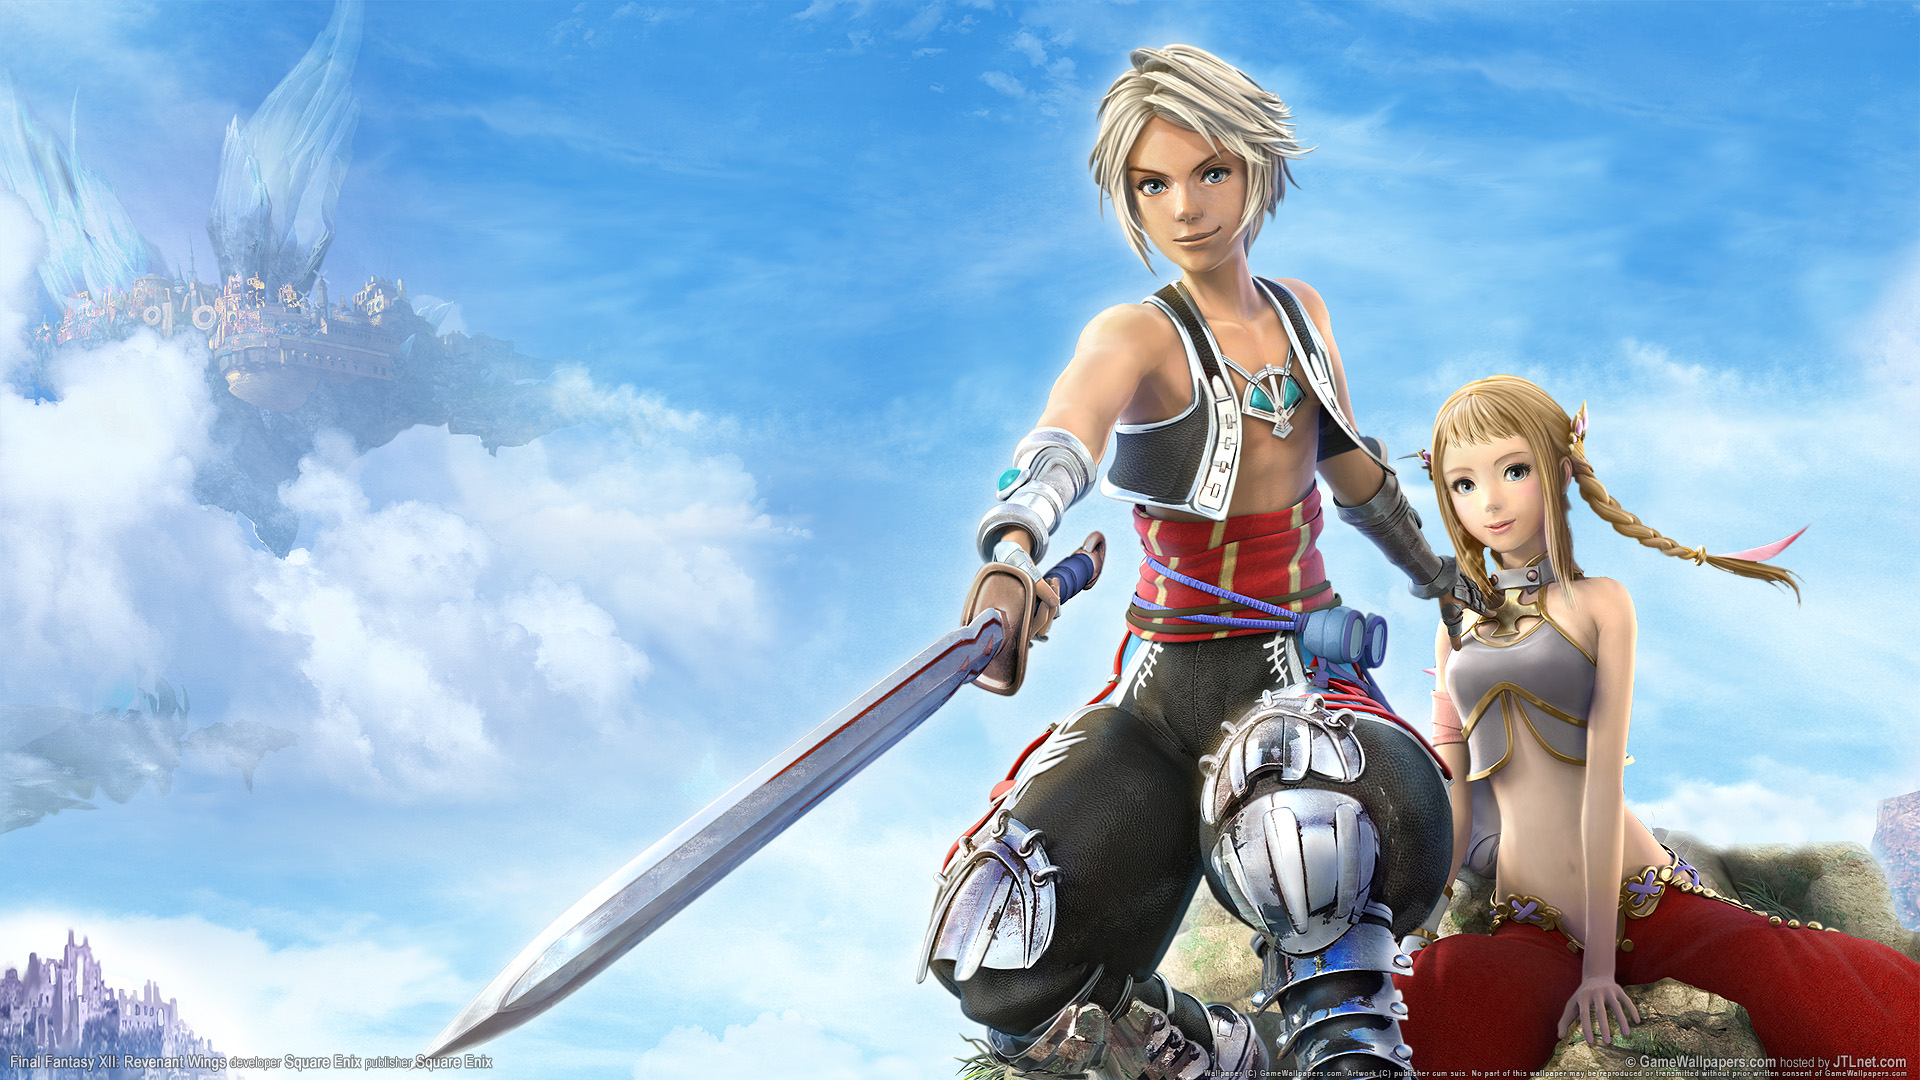 Final fantasy 12 1100.91 Kb